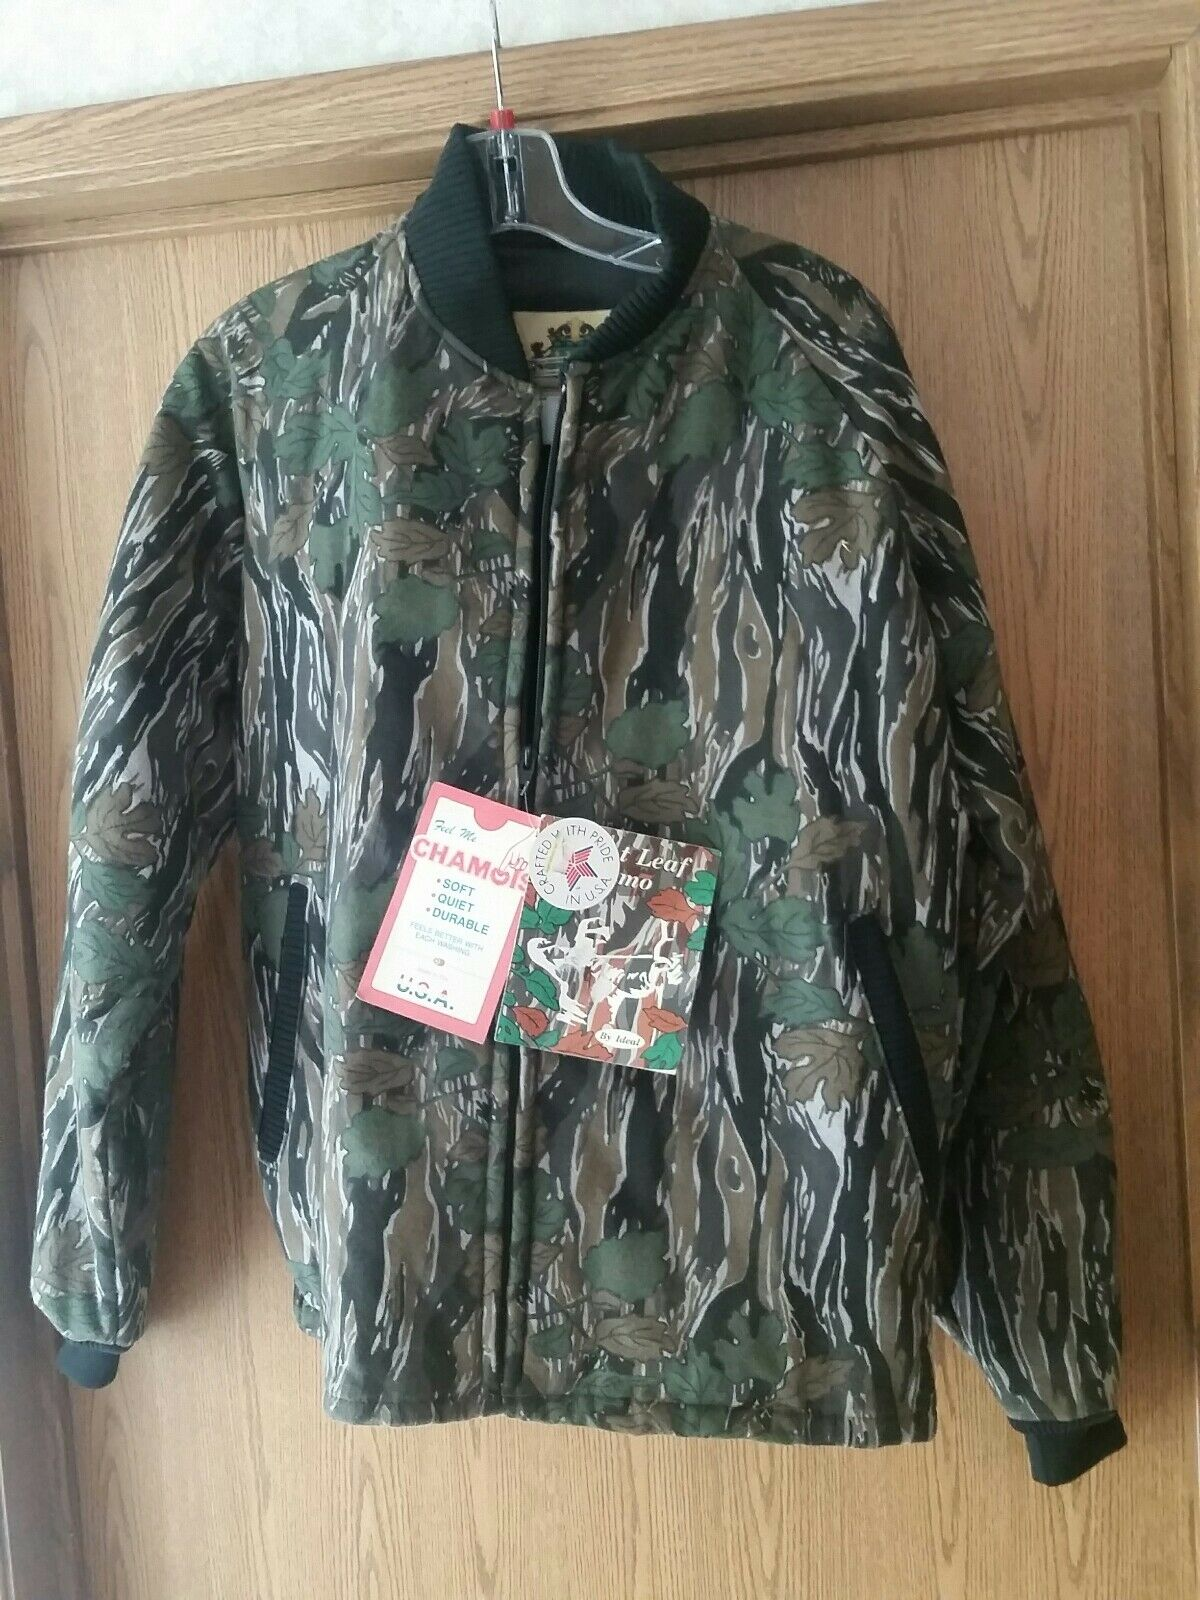 Vintage Ideal Silent Leaf Chamois 38-40 Camouflage coat. Medium. NWT USA made